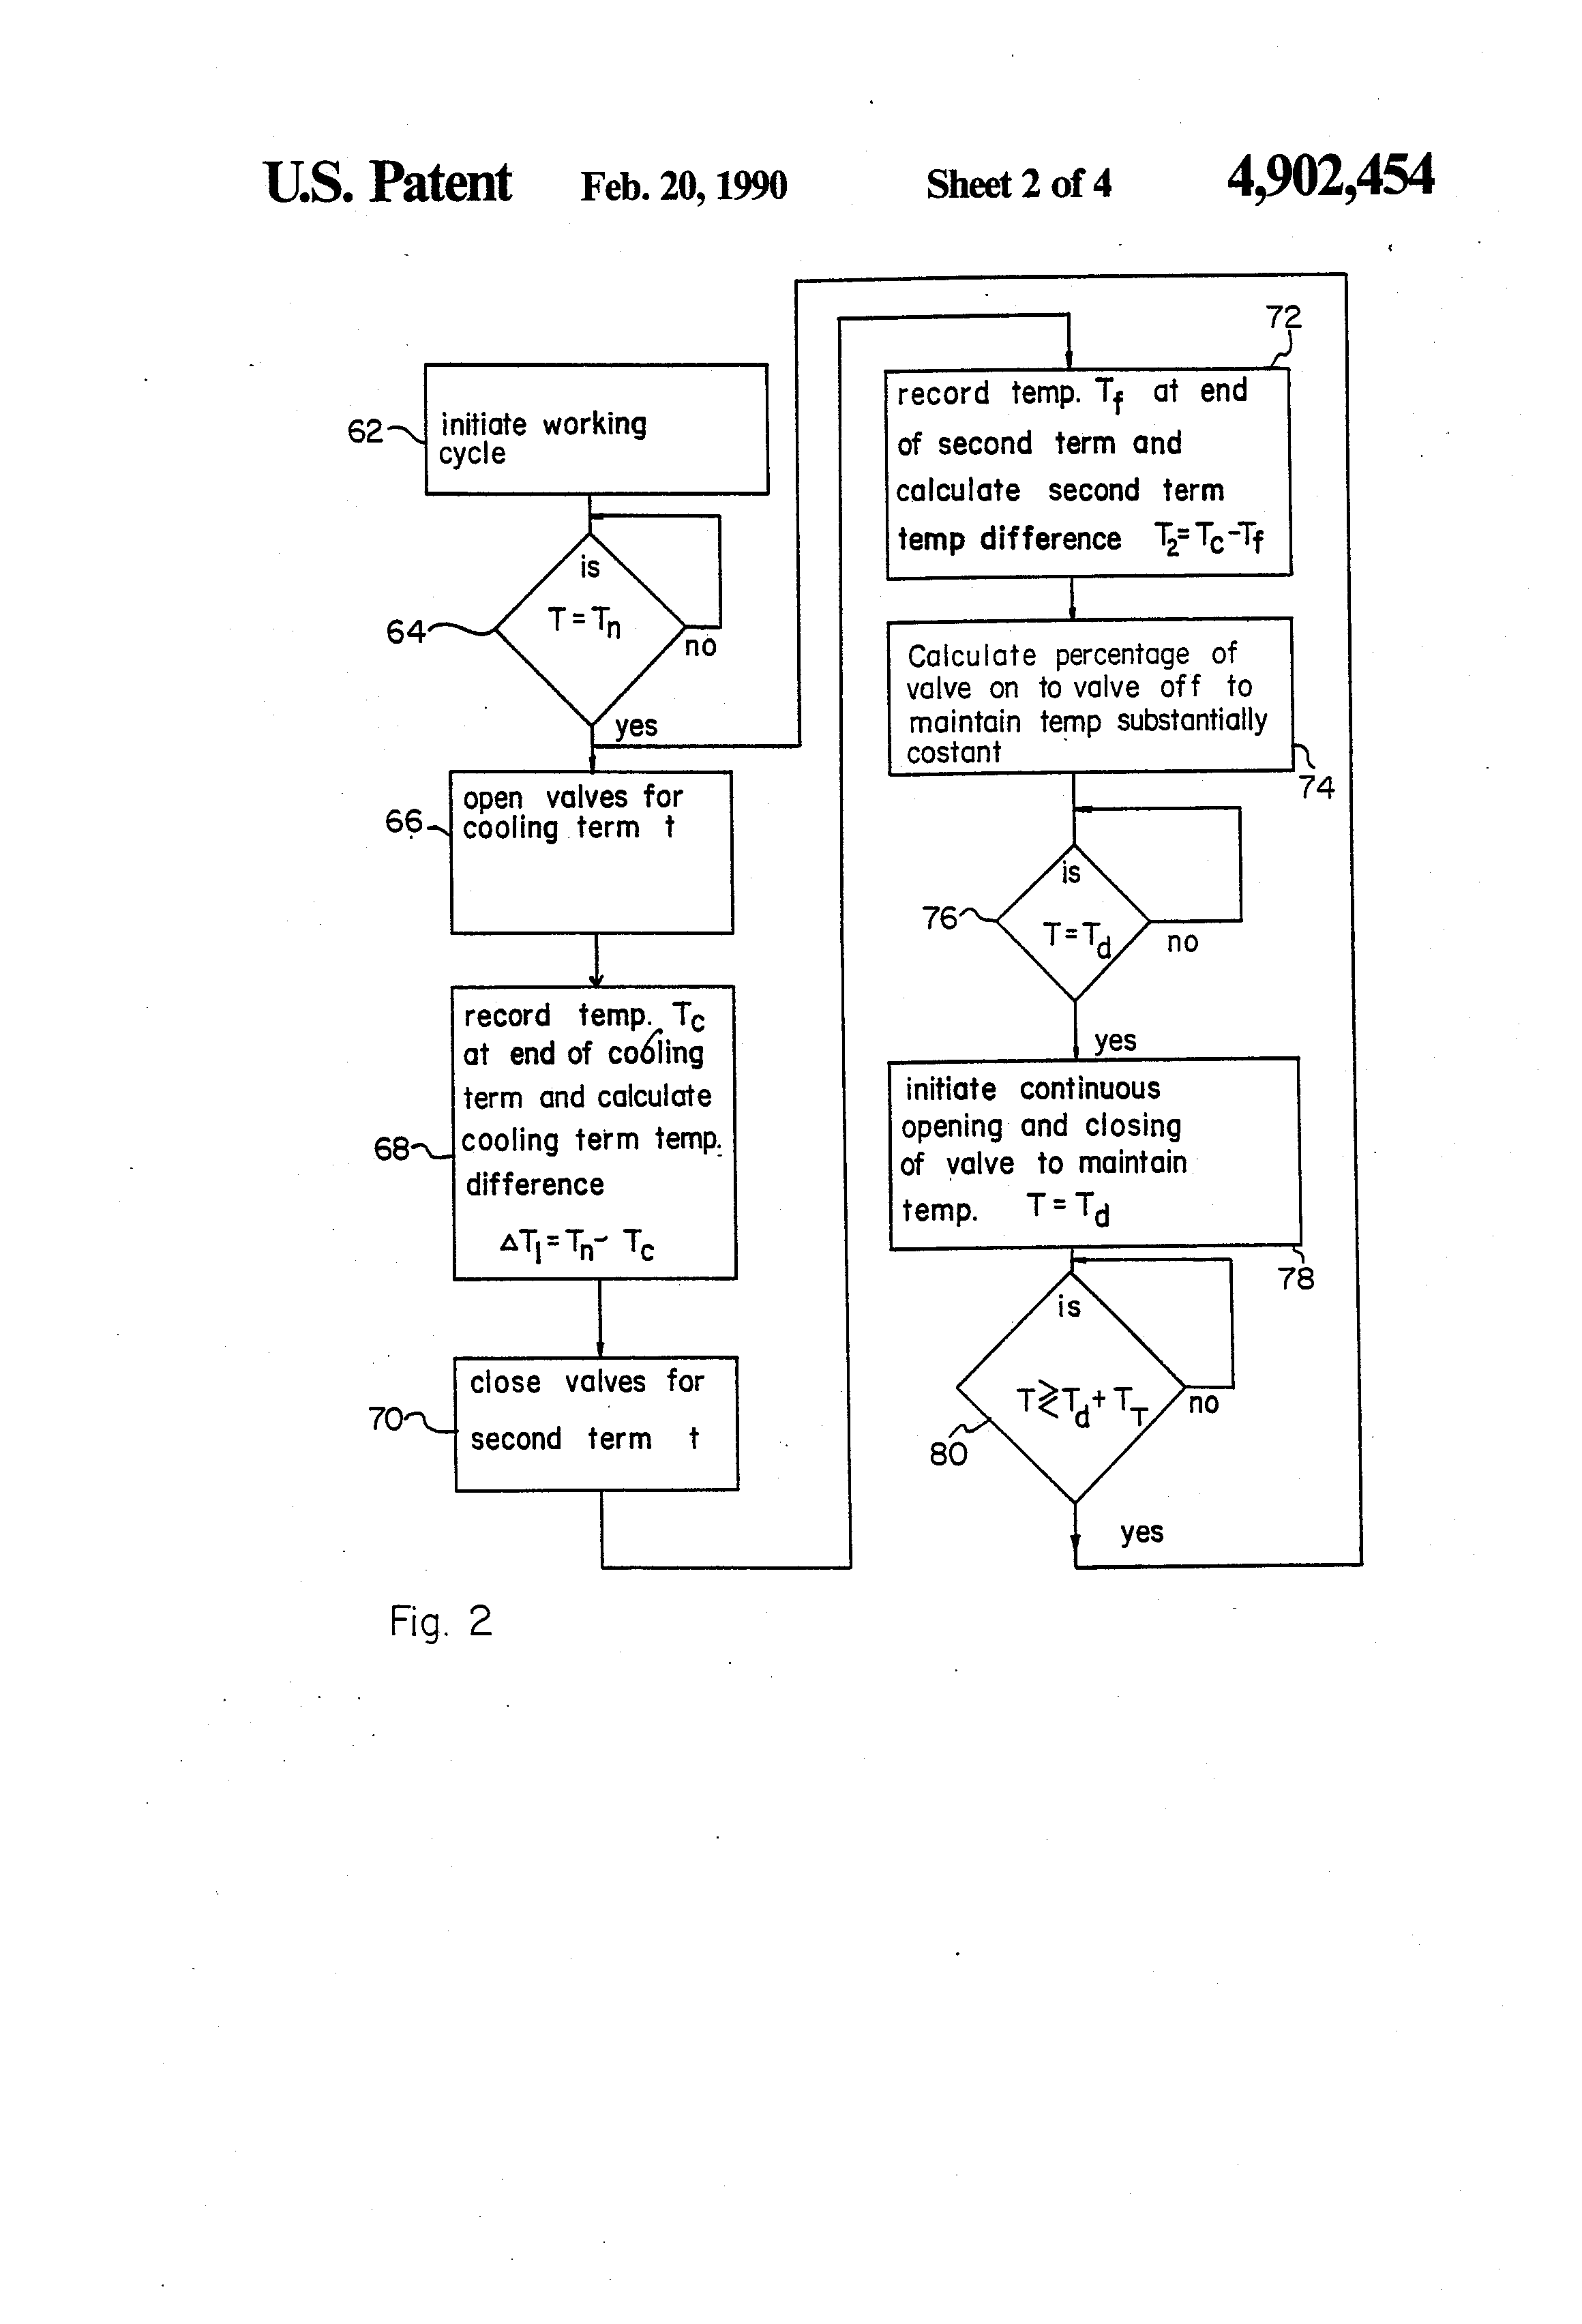 process flow diagram of reaction injection moulding